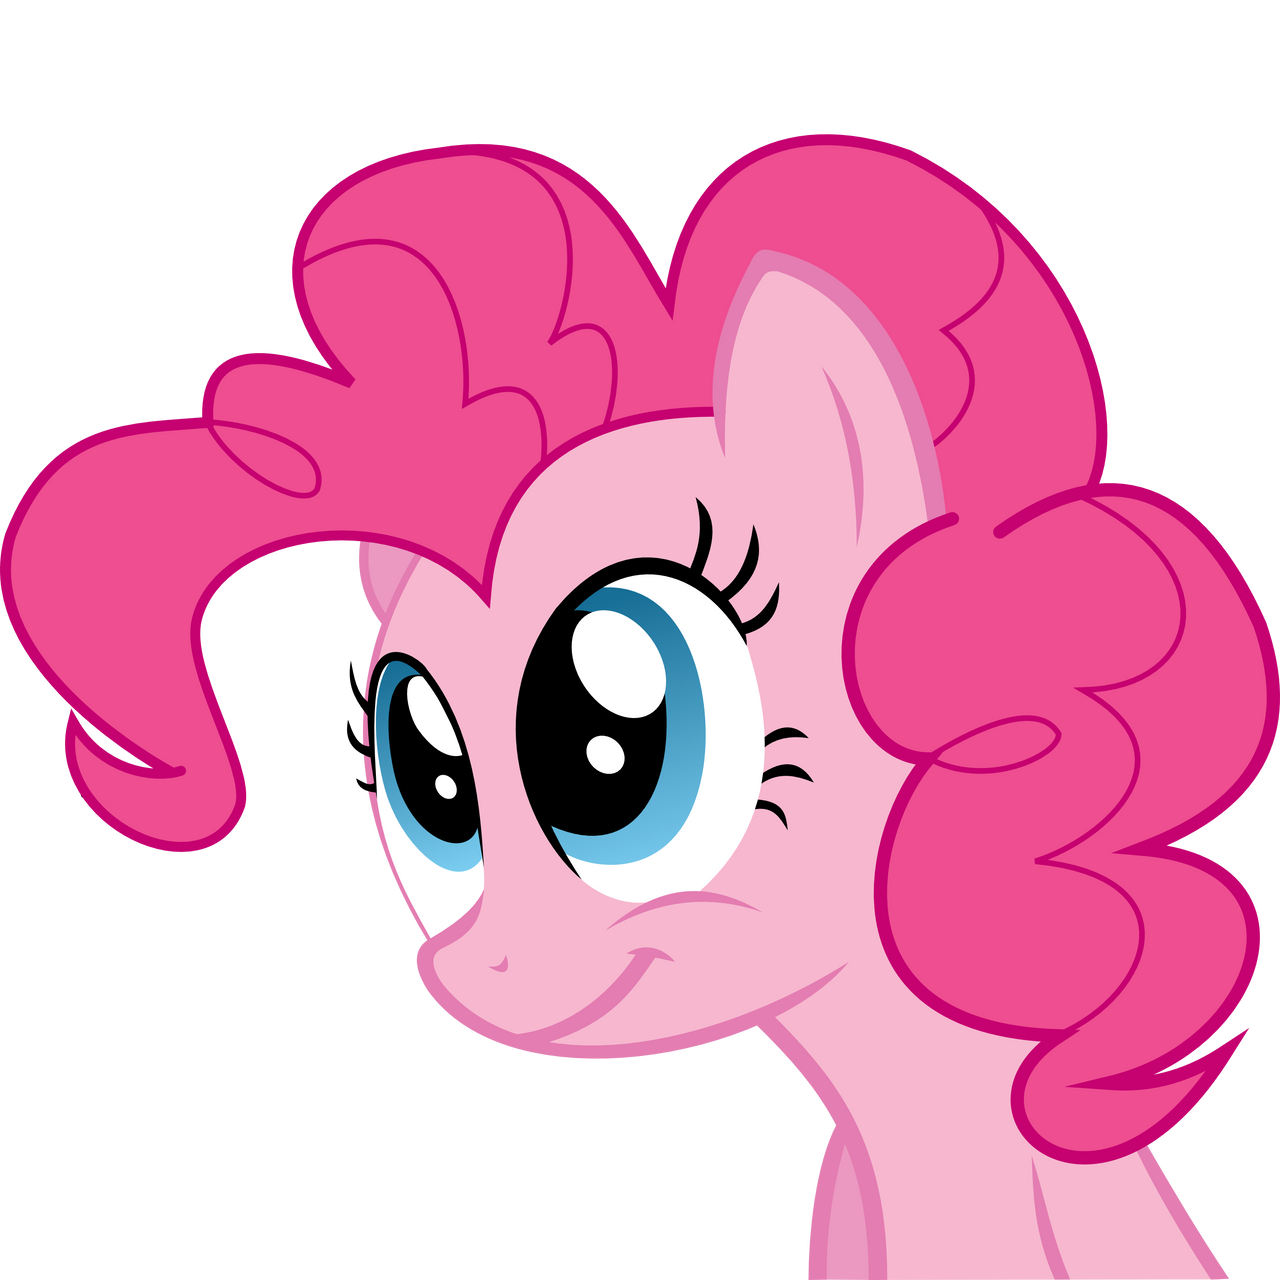 Pinkie Pie Smile by hokutto on DeviantArt